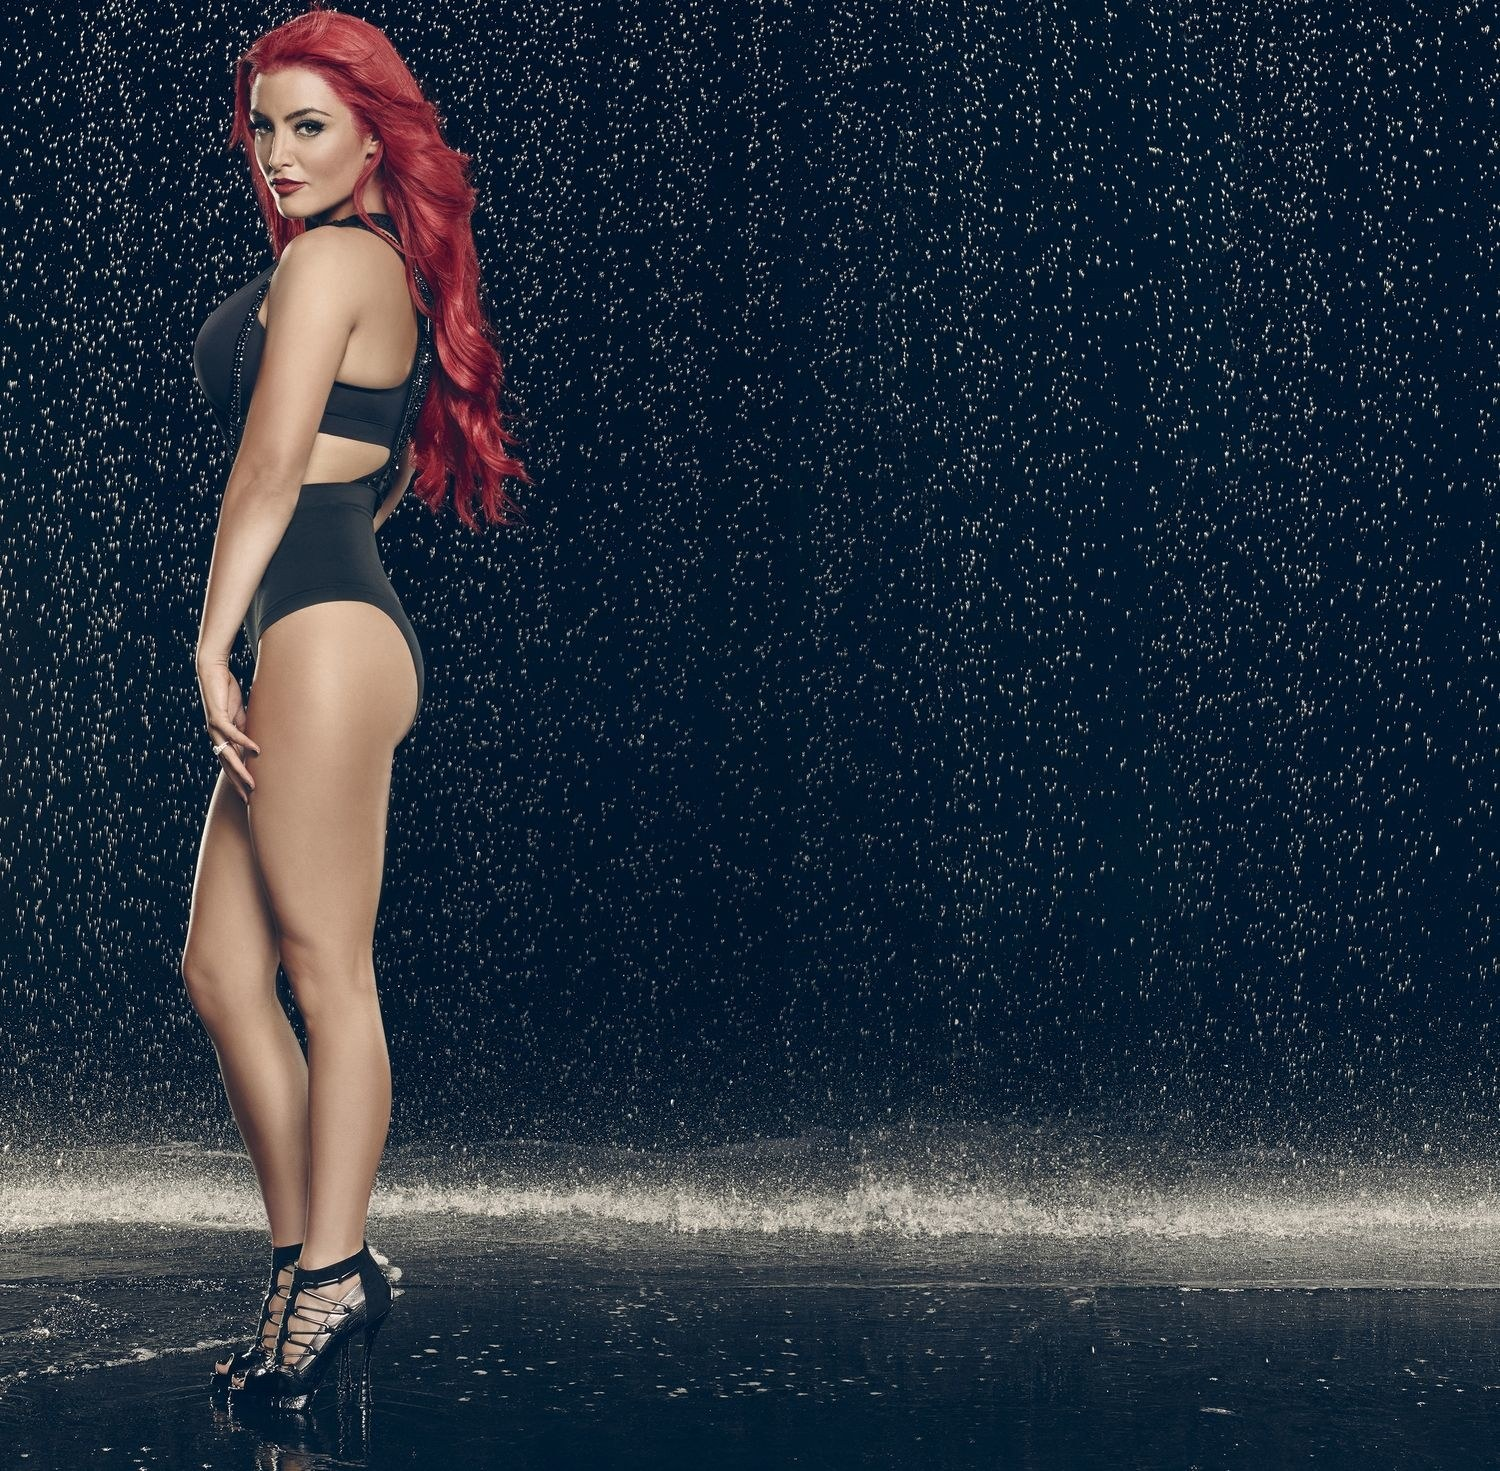 Eva Marie Full hd wallpapers